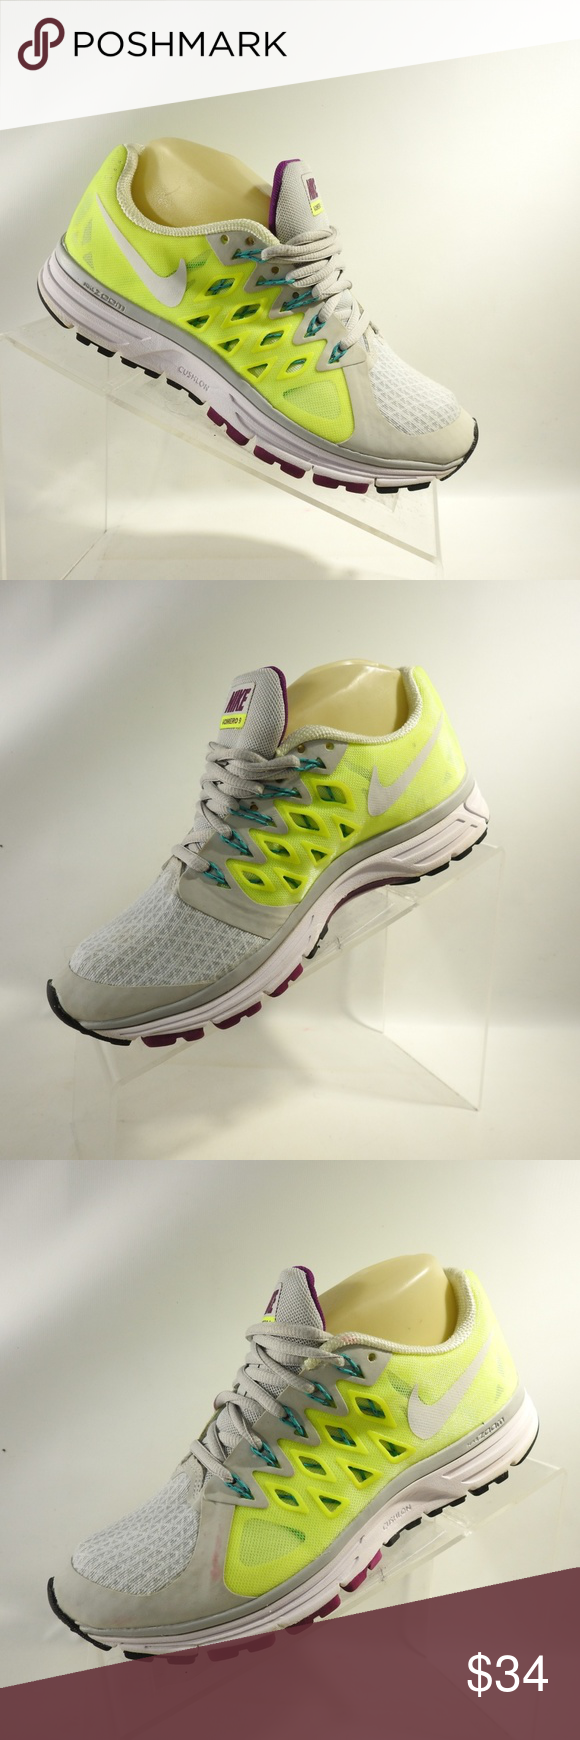 sports shoes 63594 8e1f3 Nike Zoom Vomero 9 Sz 6.5 Running Shoes For Women Nike Zoom Vomero 9  642196-007 Size 6.5 M Gray Volt mesh Running Shoes For Women Please note  that many of ...